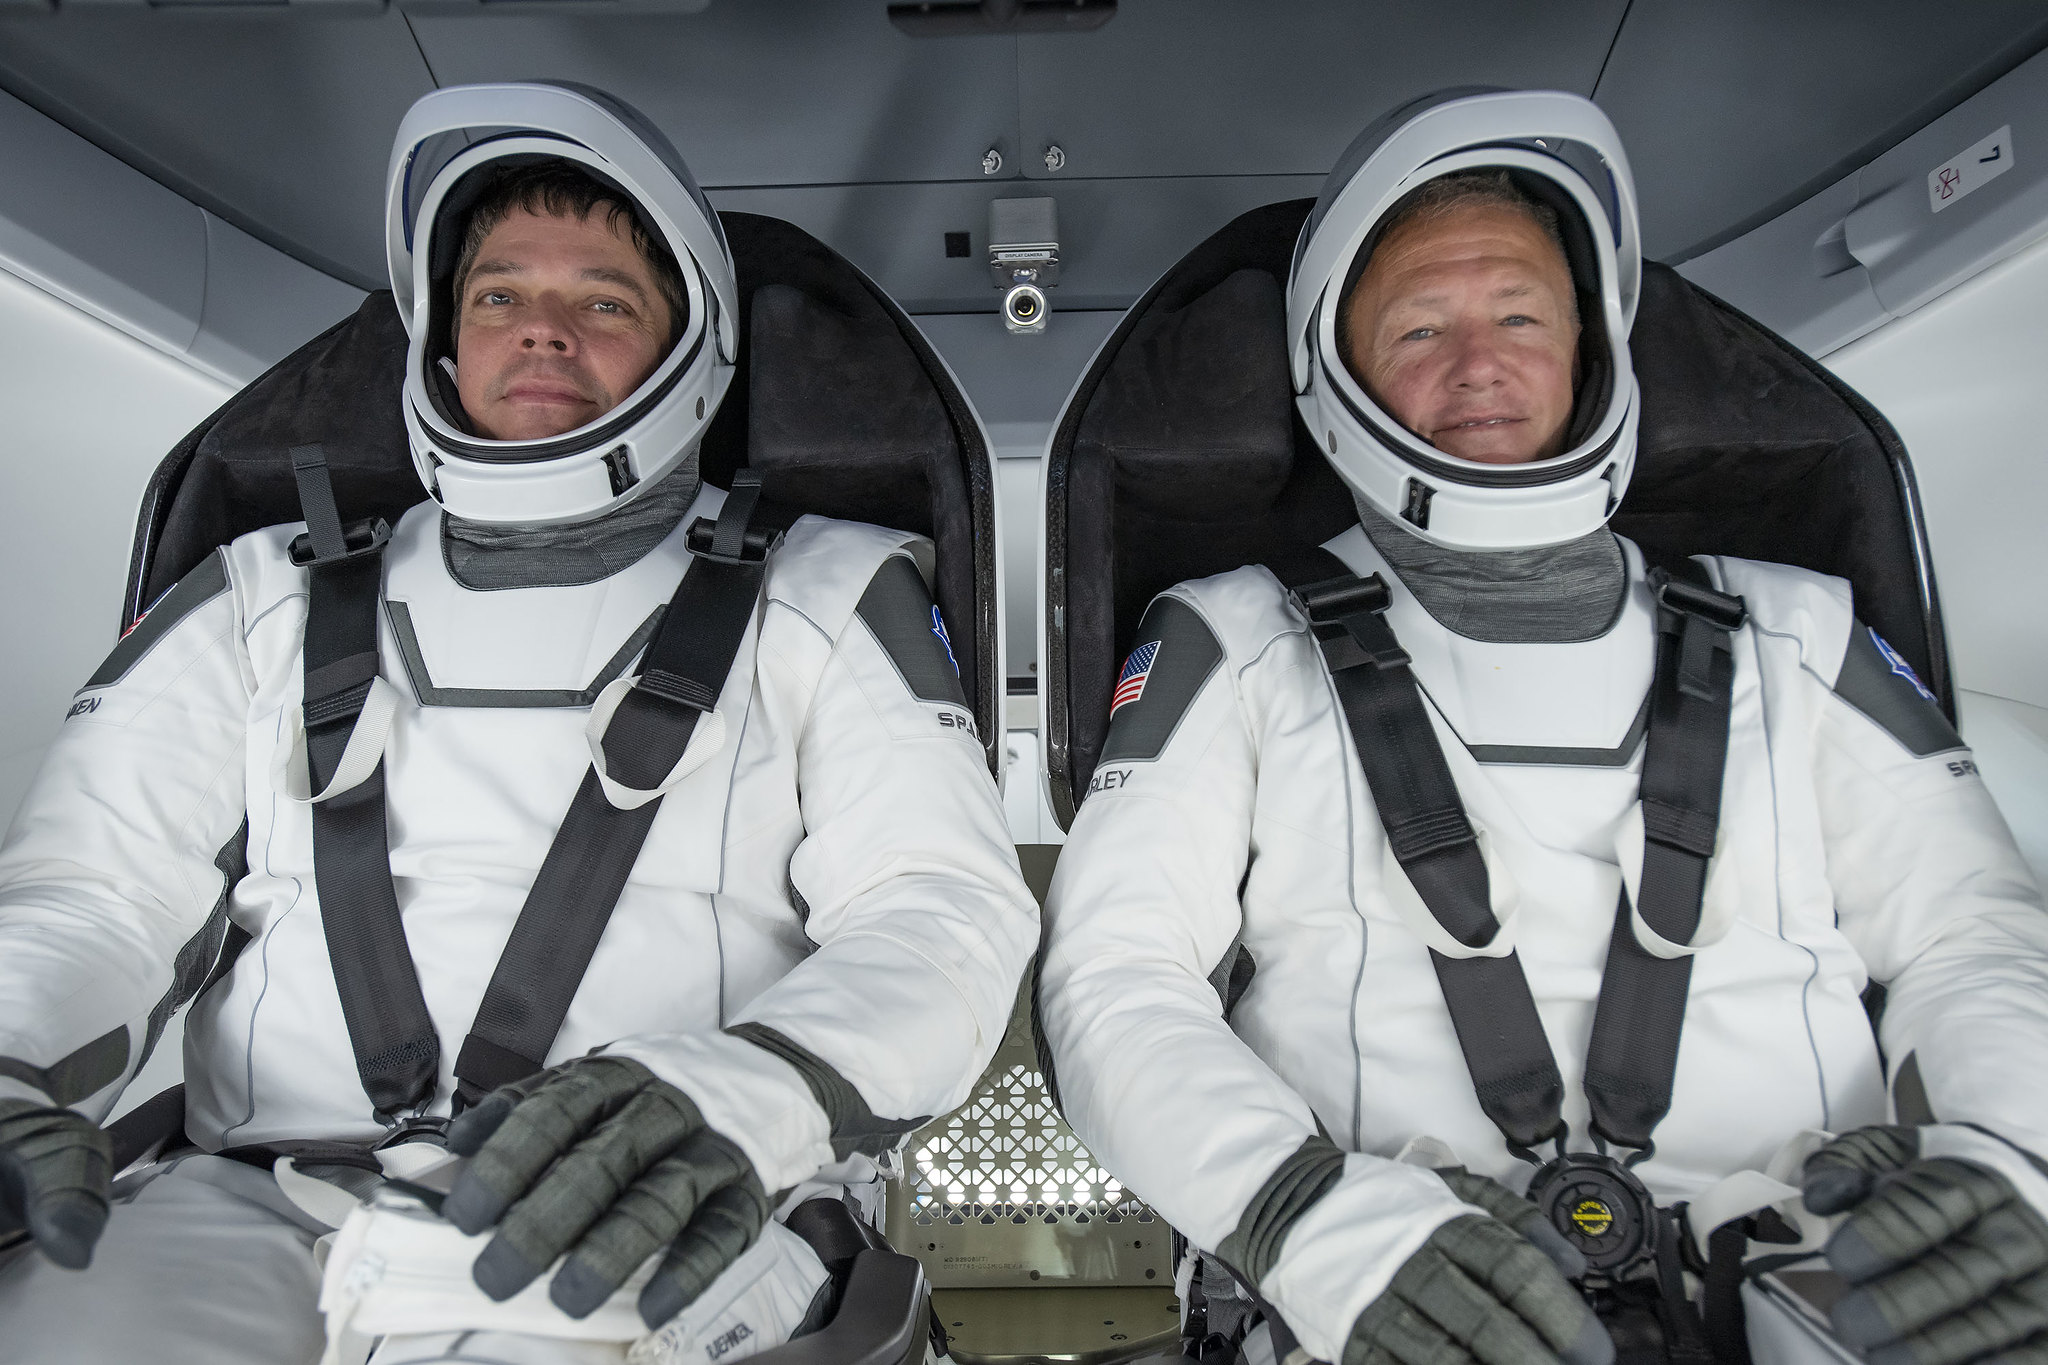 SpaceX's Crew Dragon Mission – Milestones